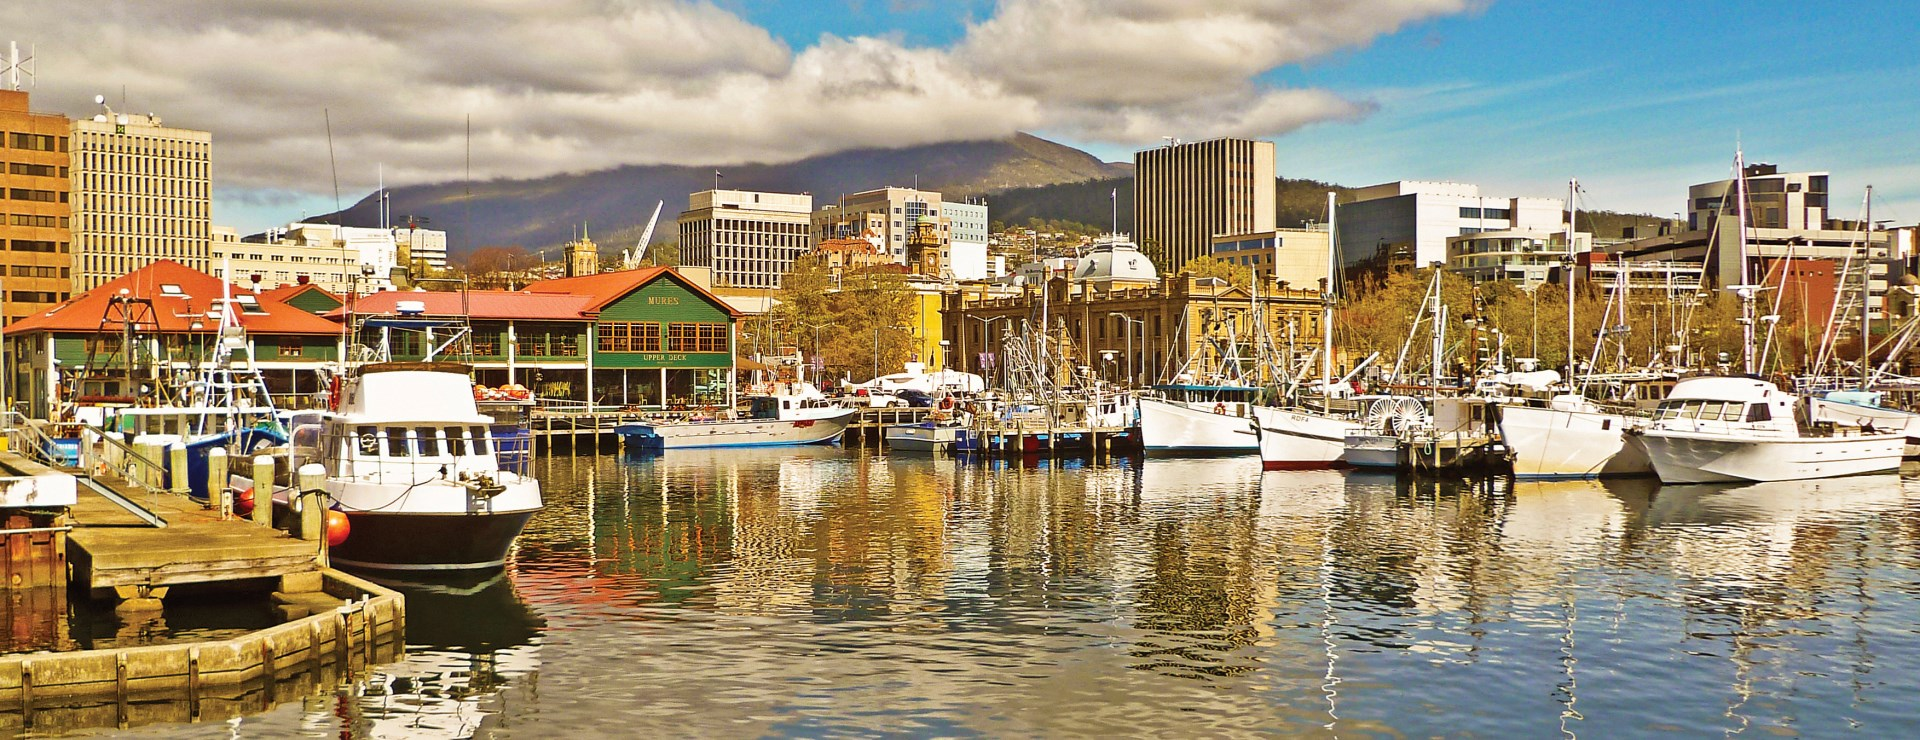 The Lodge on Elizabeth - Tourism Tasmania & Tony Crehan - Hobart Waterfront and Mt Wellington